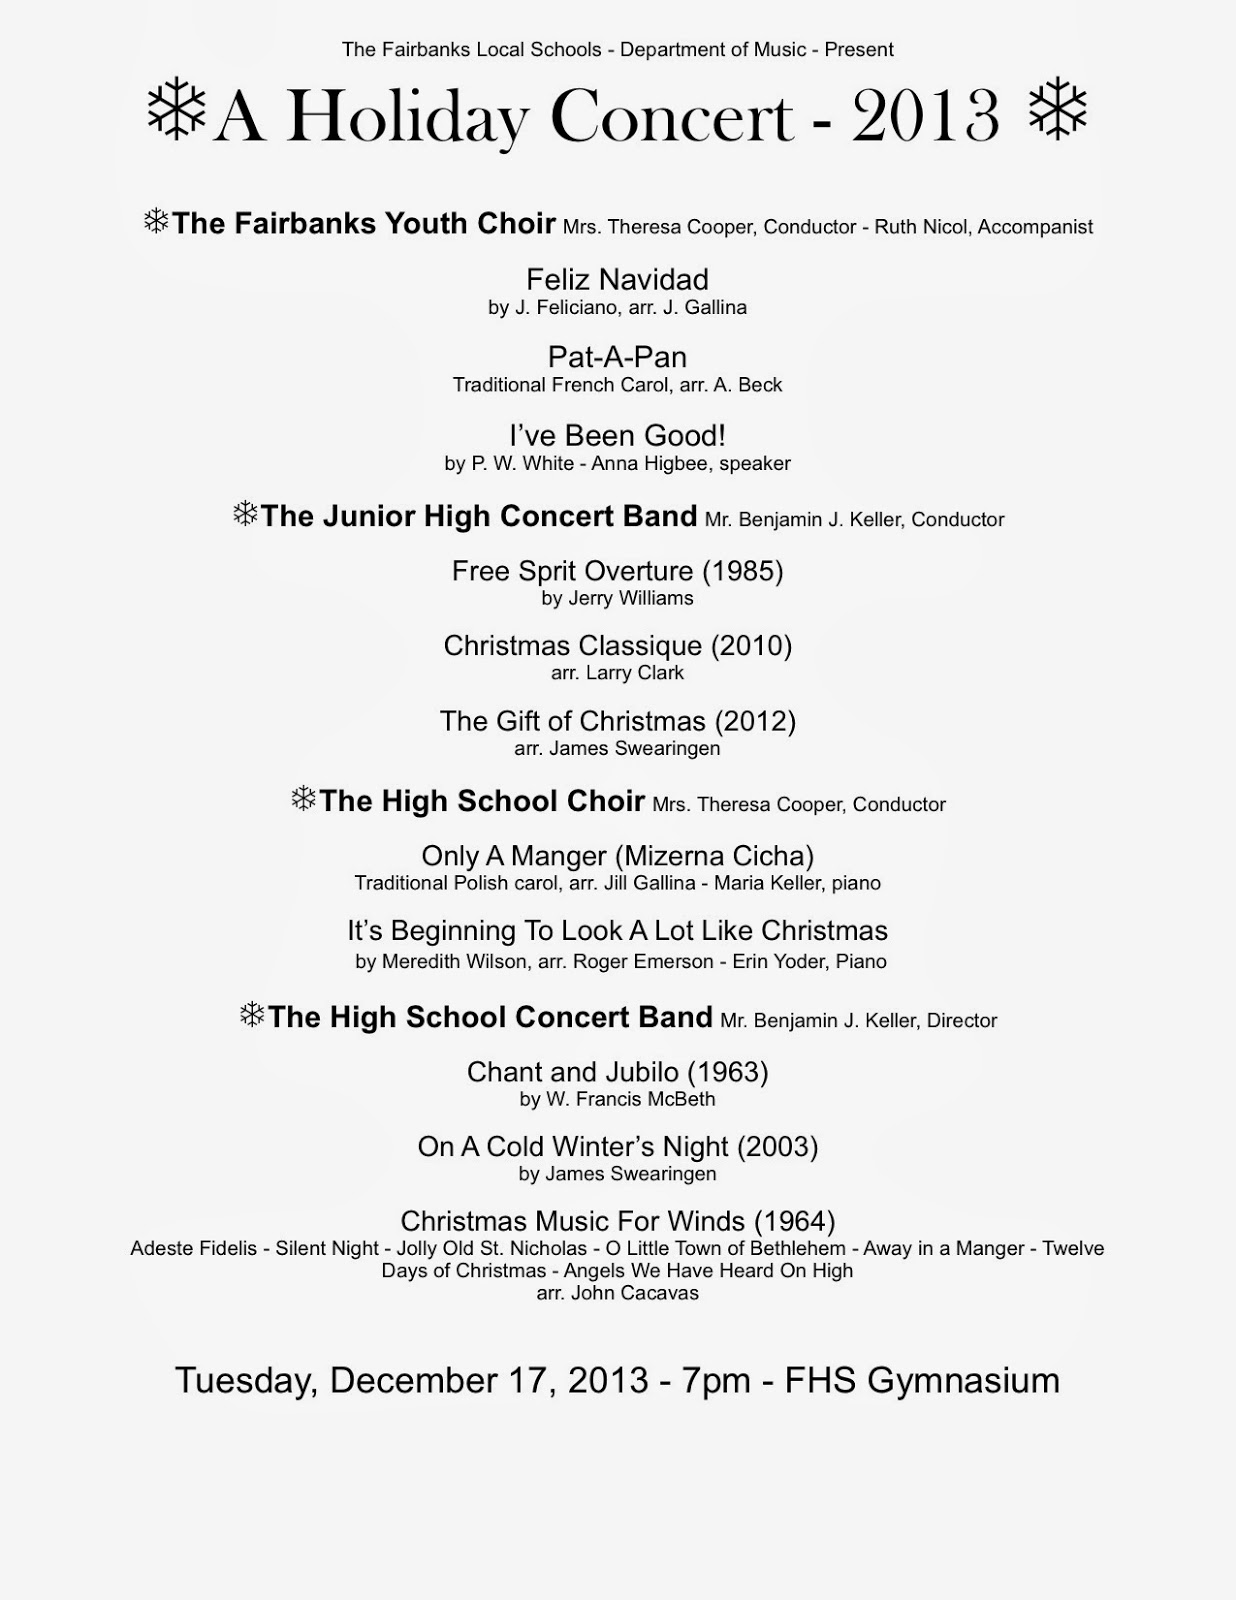 Holiday Concert Program 2013 – Concert Program